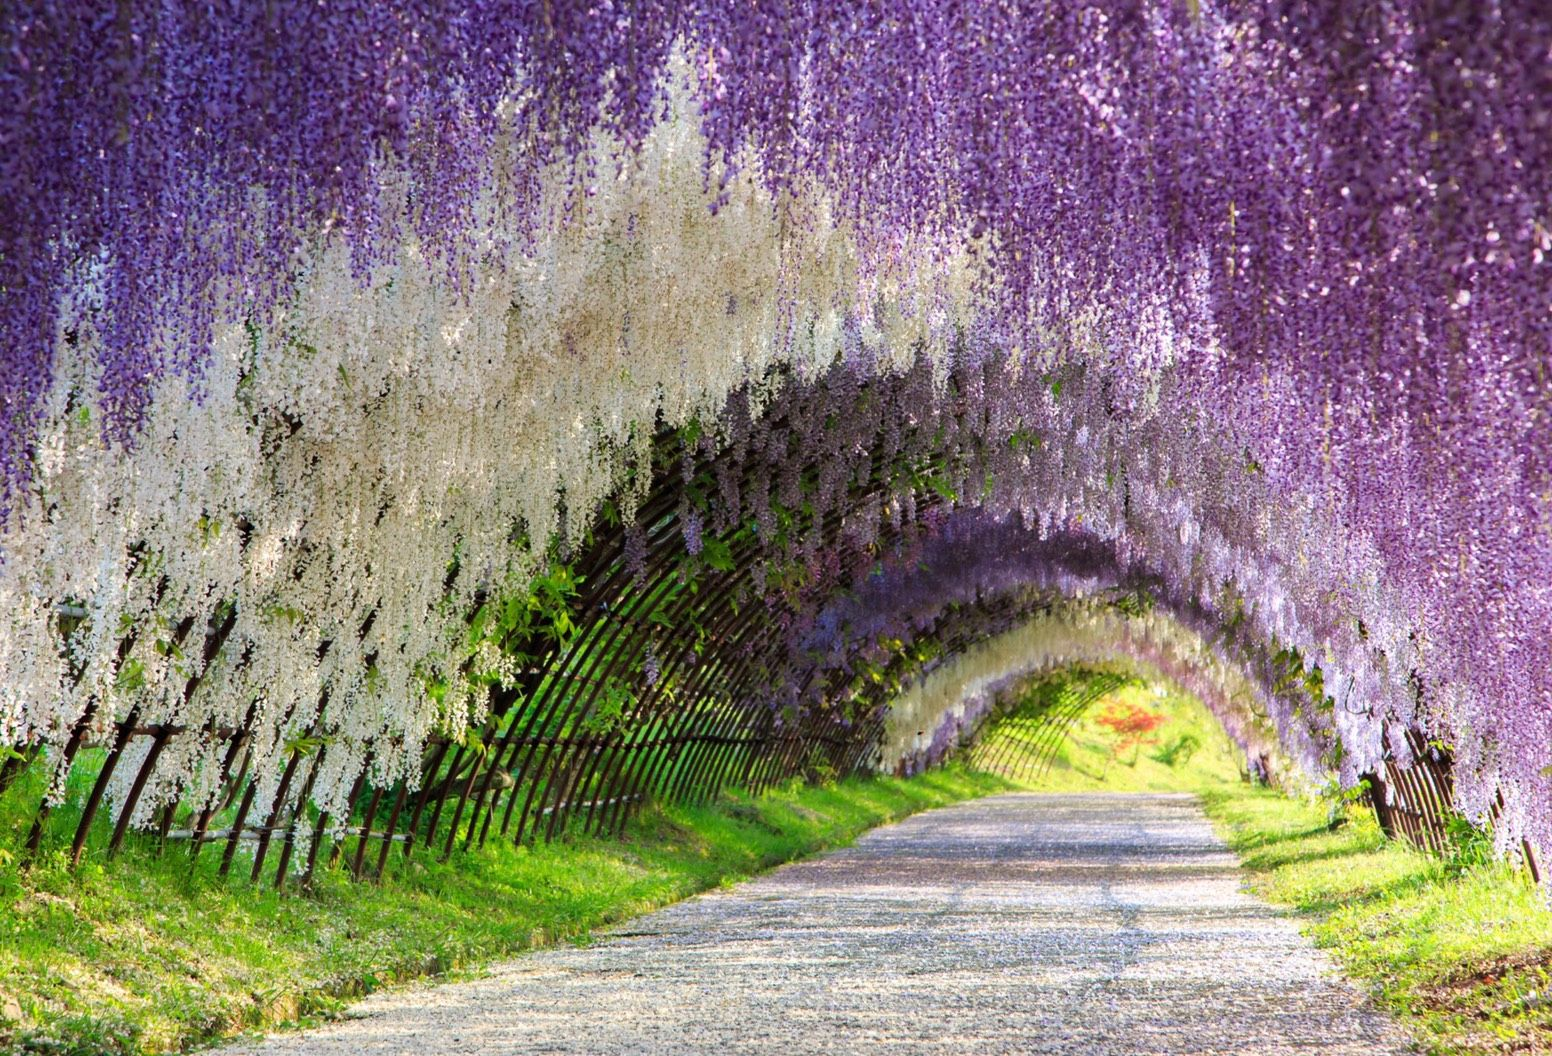 The Great Wisteria Flower Arch, Kawachi Fuji Garden, Kitakyūshū, Japan – Most Beautiful Picture of the Day: April 6, 2017 - http://mostbeautifulpicture.com/2017/04/06/the-great-wisteria-flower-arch-kawachi-fuji-garden-kitakyushu-japan-most-beautiful-picture-of-the-day-april-6-2017/